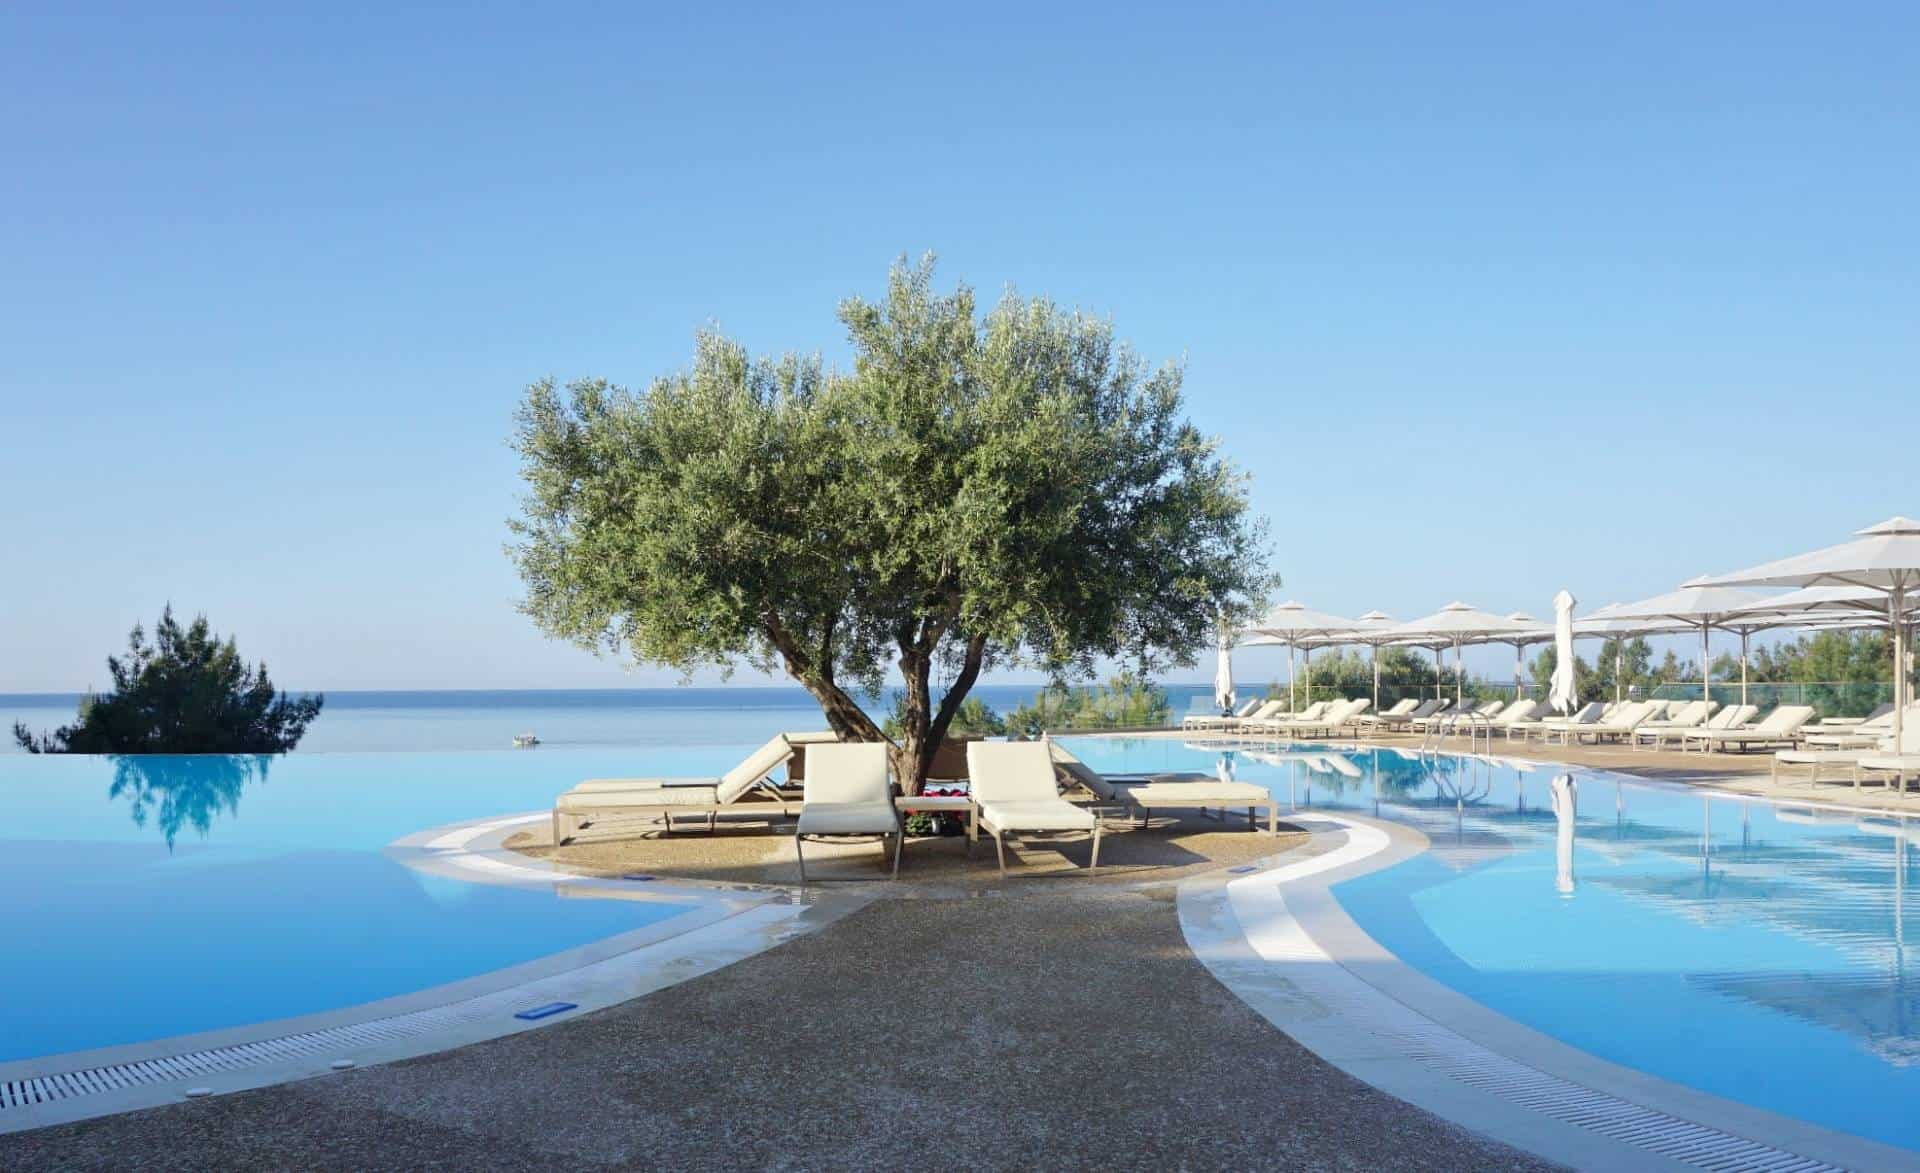 The Main pool at  Oceania Greece